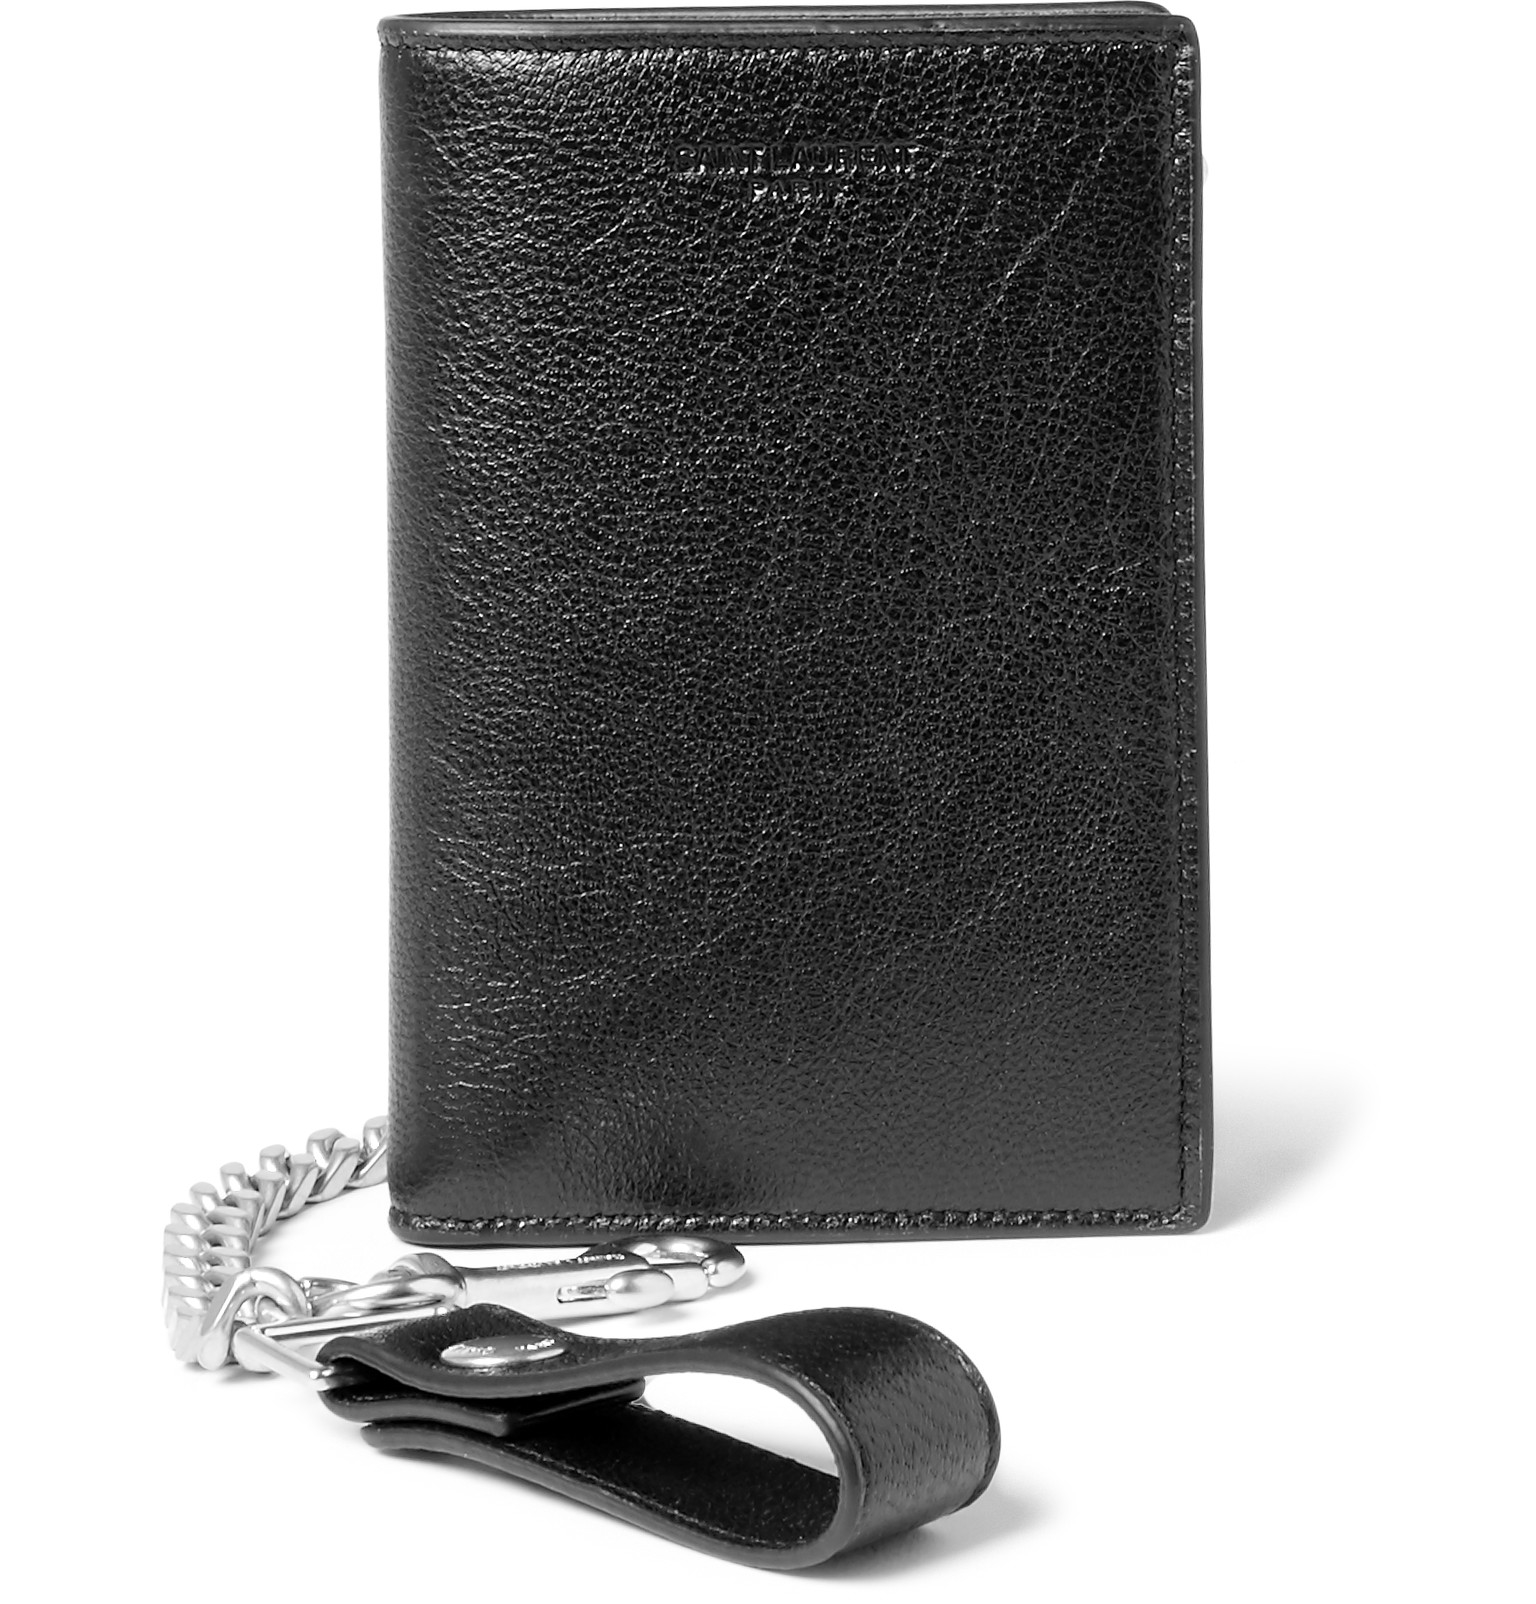 a5d4124f21a Saint Laurent Rider Full-grain Leather Chain Wallet in Black for Men ...